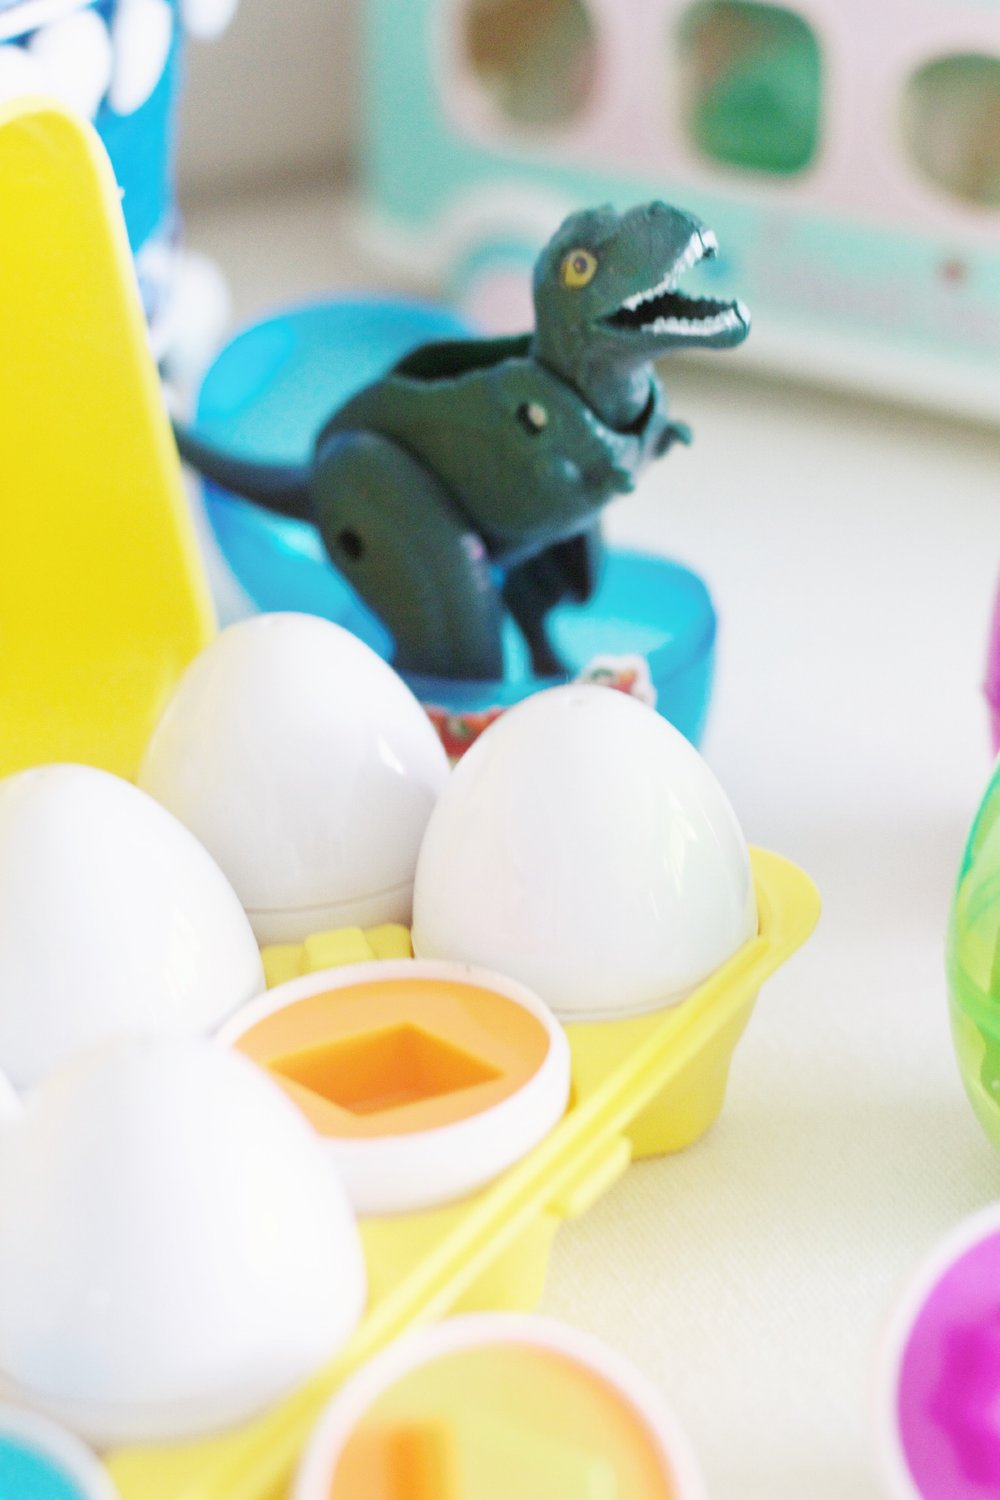 the dino eggs will be a finn favorite! the dino fold up inside the eggs for a surprise.